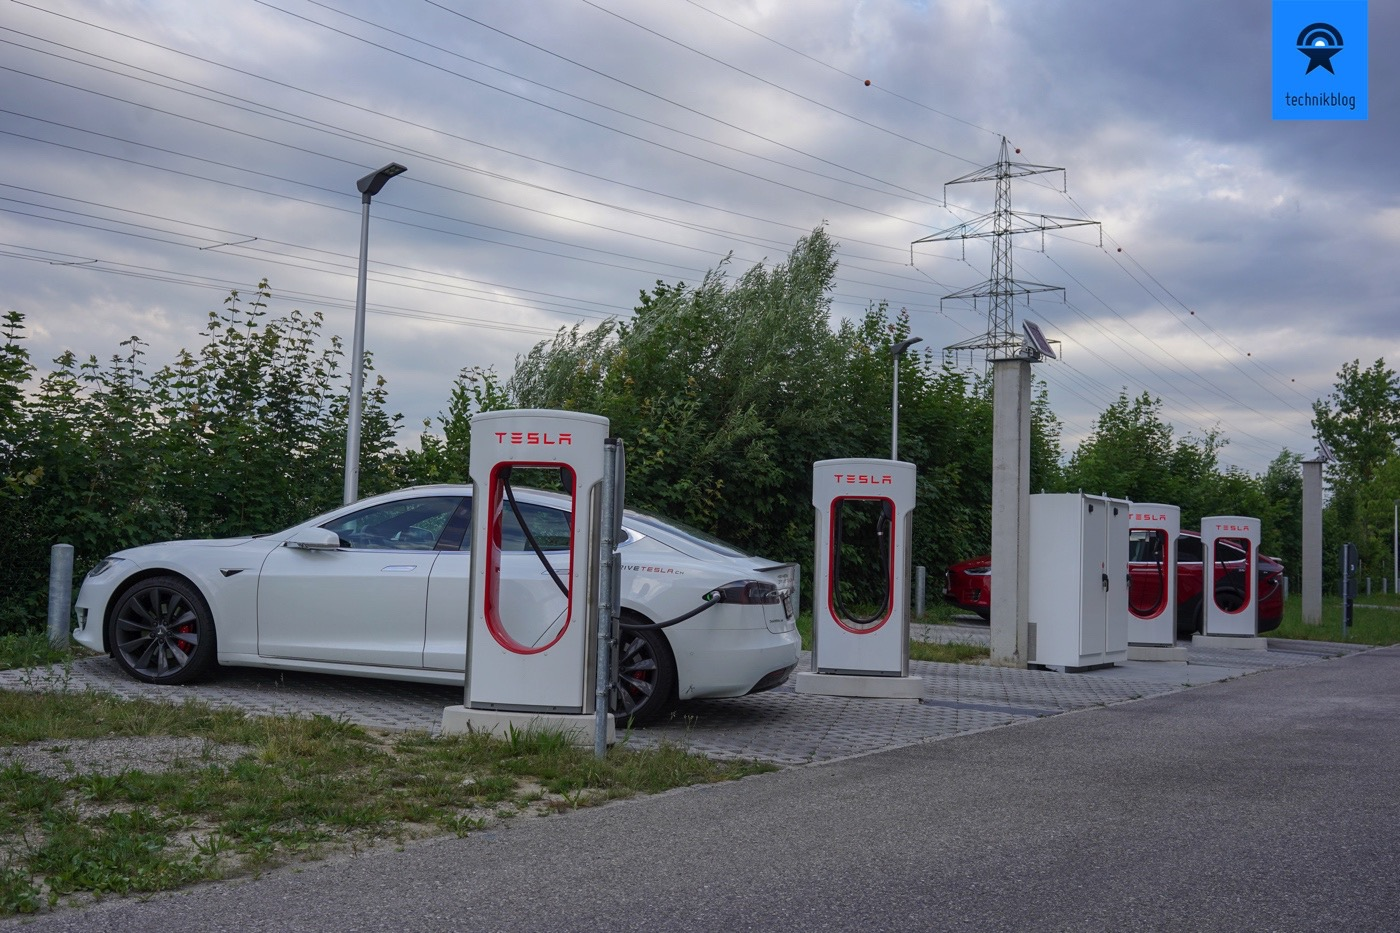 Abholung des Tesla Model S in Oftringen am Supercharger.